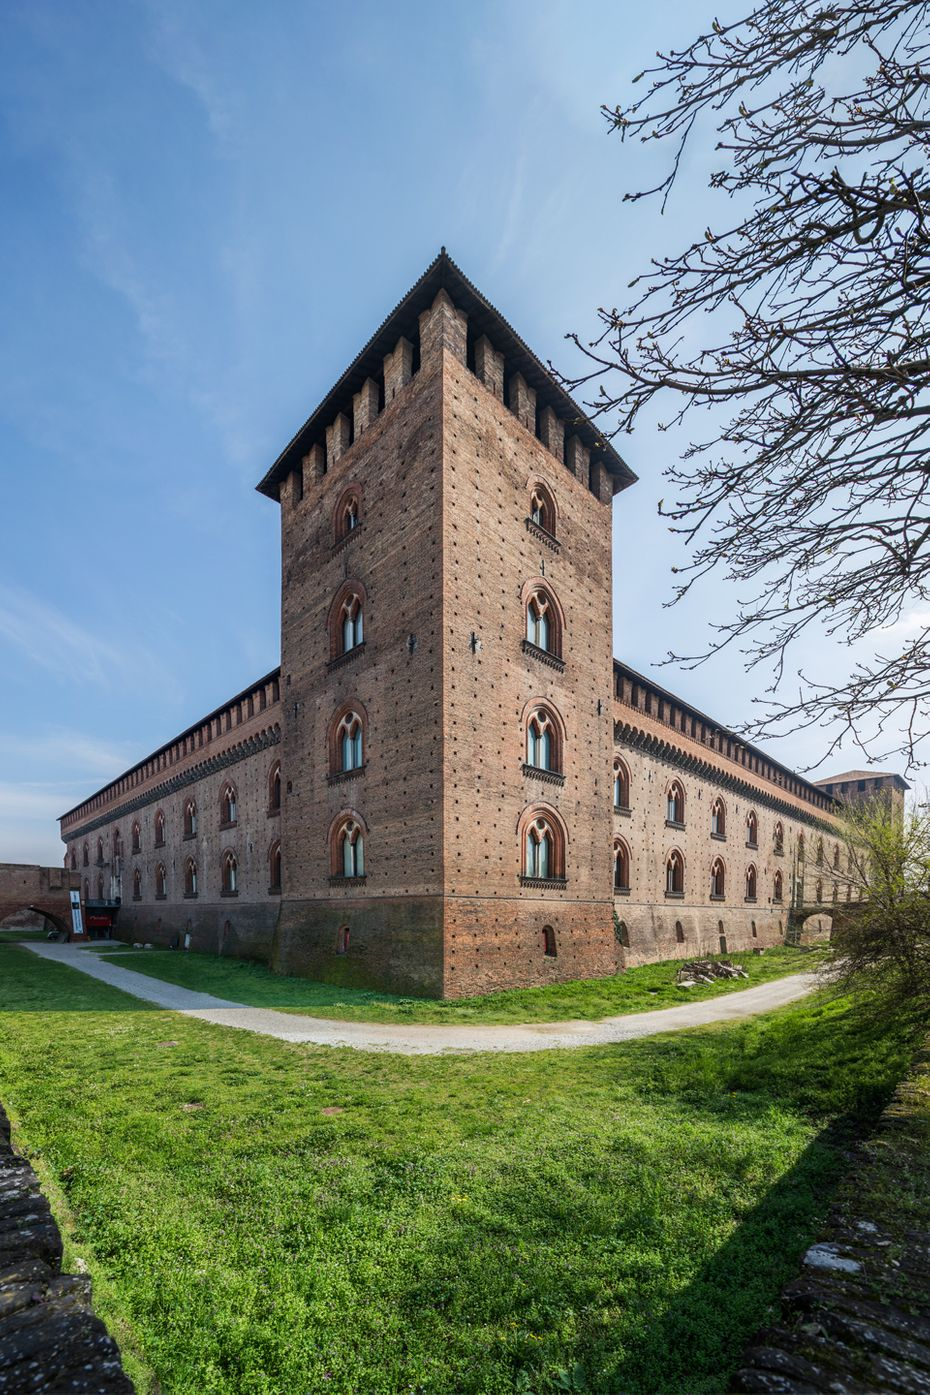 Pavia e il castello visconteo